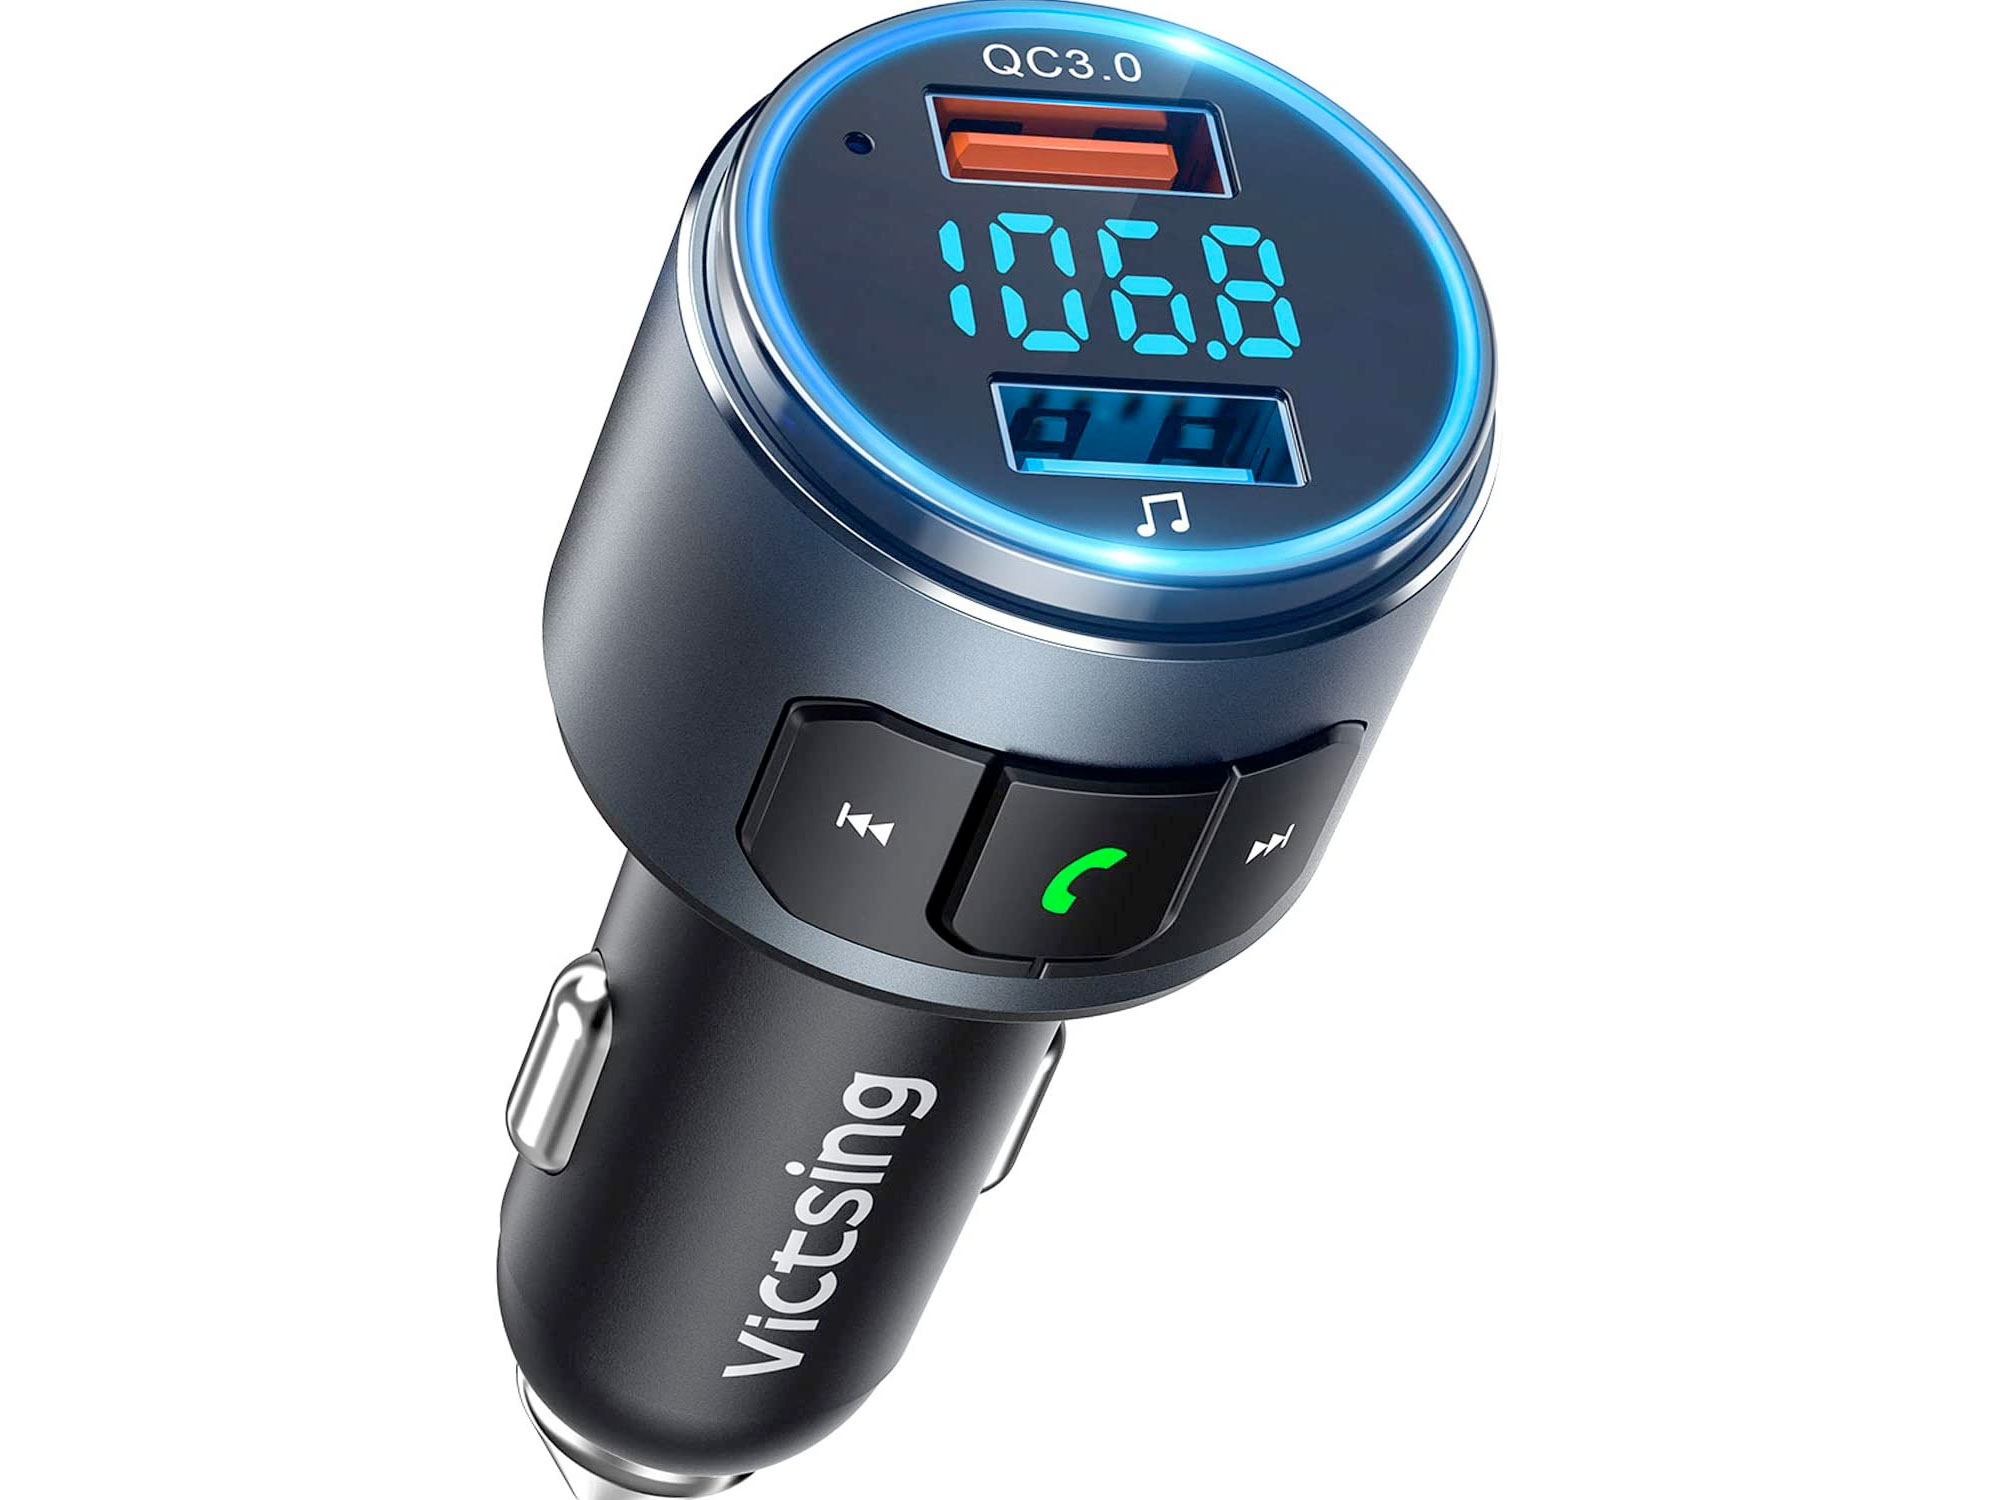 Amazon:VicTsing藍牙接收FM播放器(FM Transmitter for Bluetooth/USB)只賣$18.35